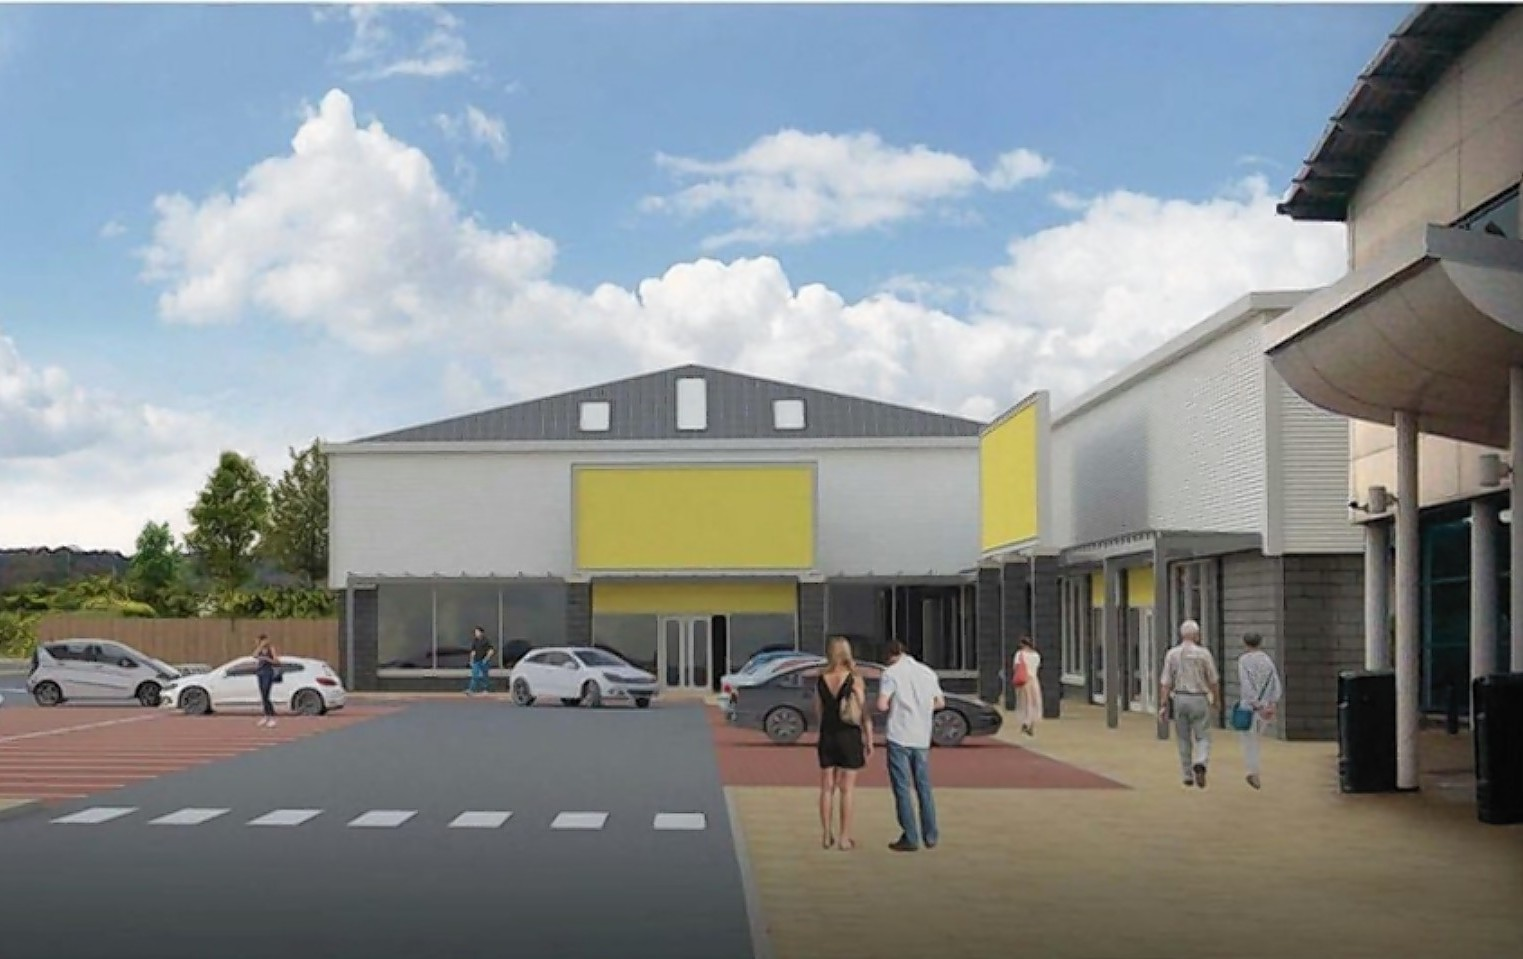 The plans for Inshes Retail Park